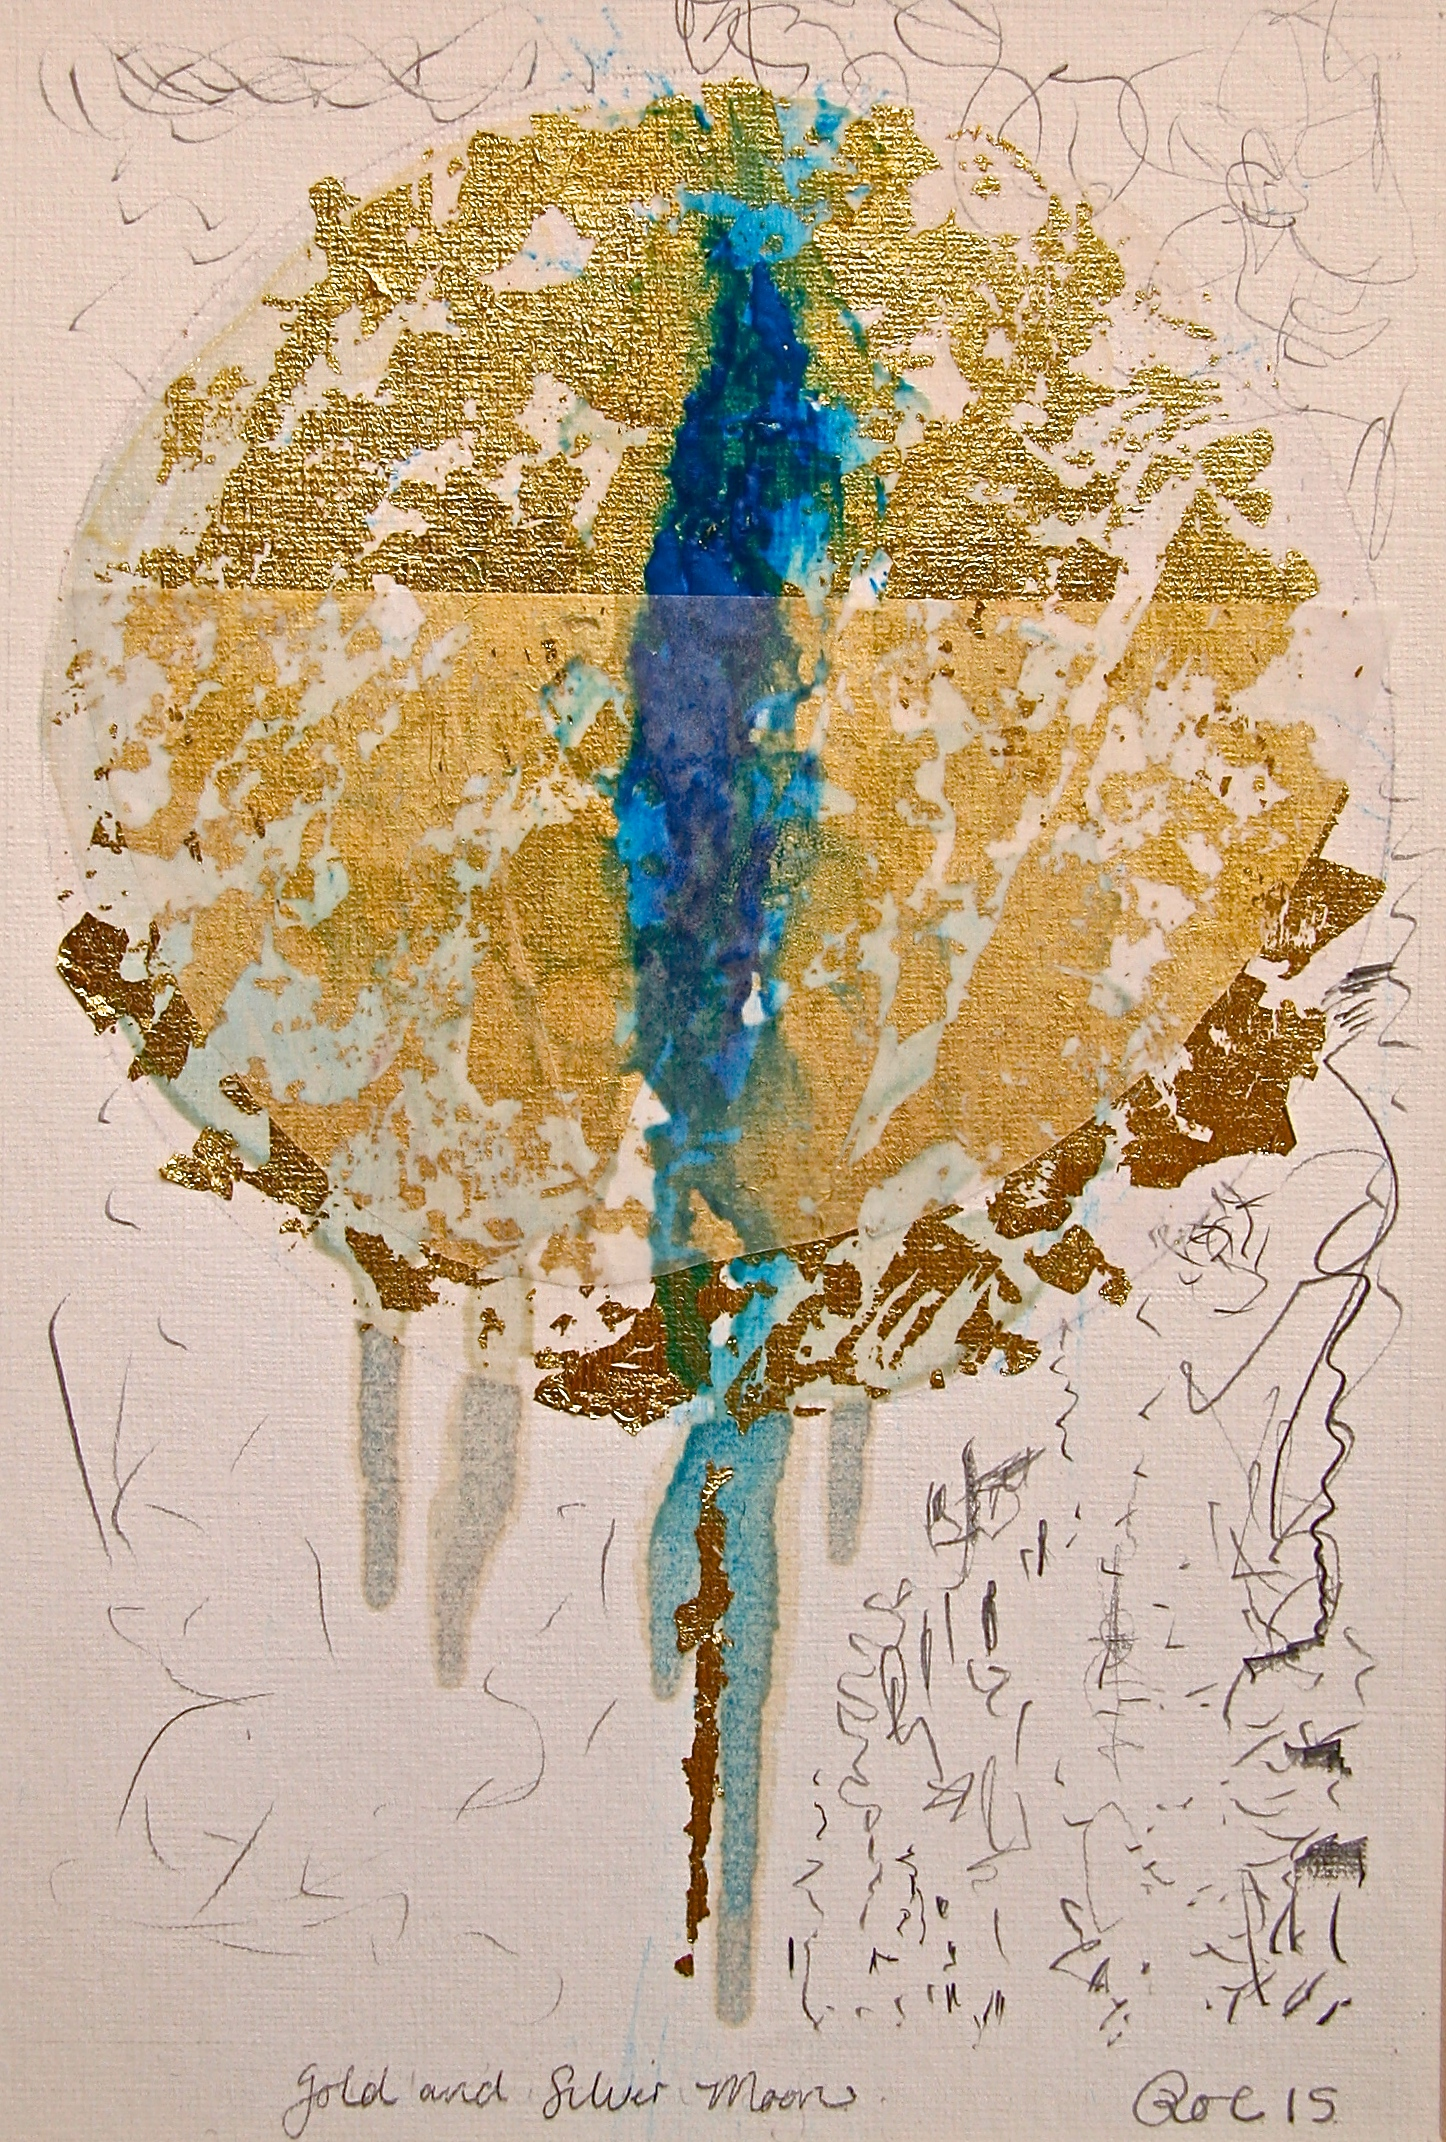 Gold and Silver Moon. Gold and metal leaf, Tinted shellac and mixed media on paper. 210 x 297mm. 2015.